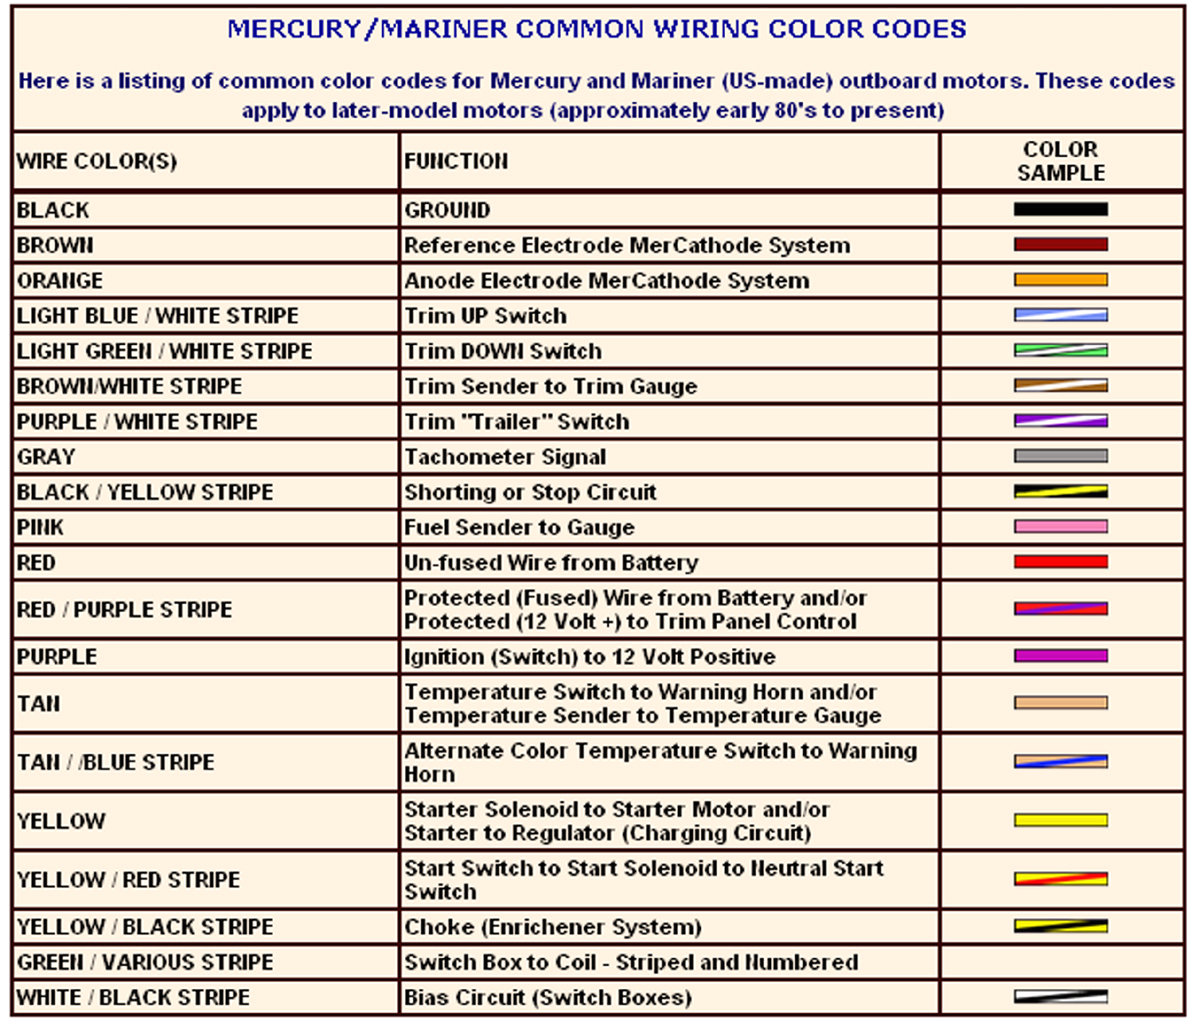 nissan wiring diagram color abbreviations my wiring diagram nissan wire color code abbreviations nissan wire color code abbreviations